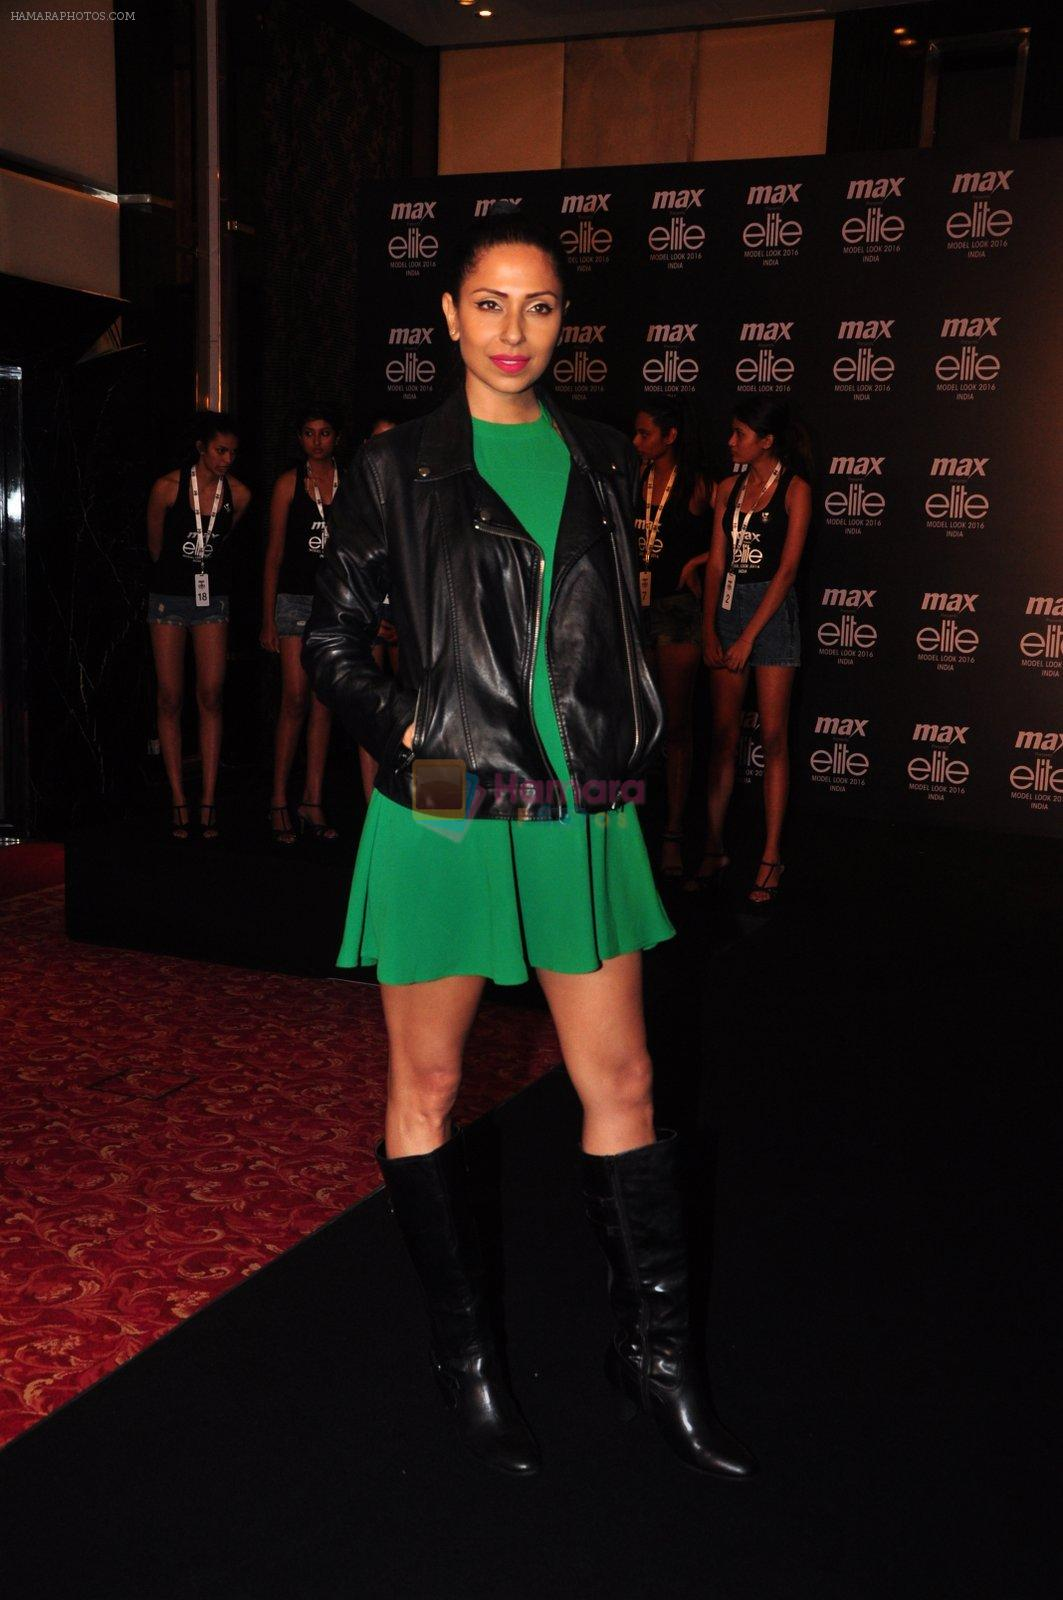 Candice Pinto at Max elite auditions in Mumbai on 3rd Oct 2016